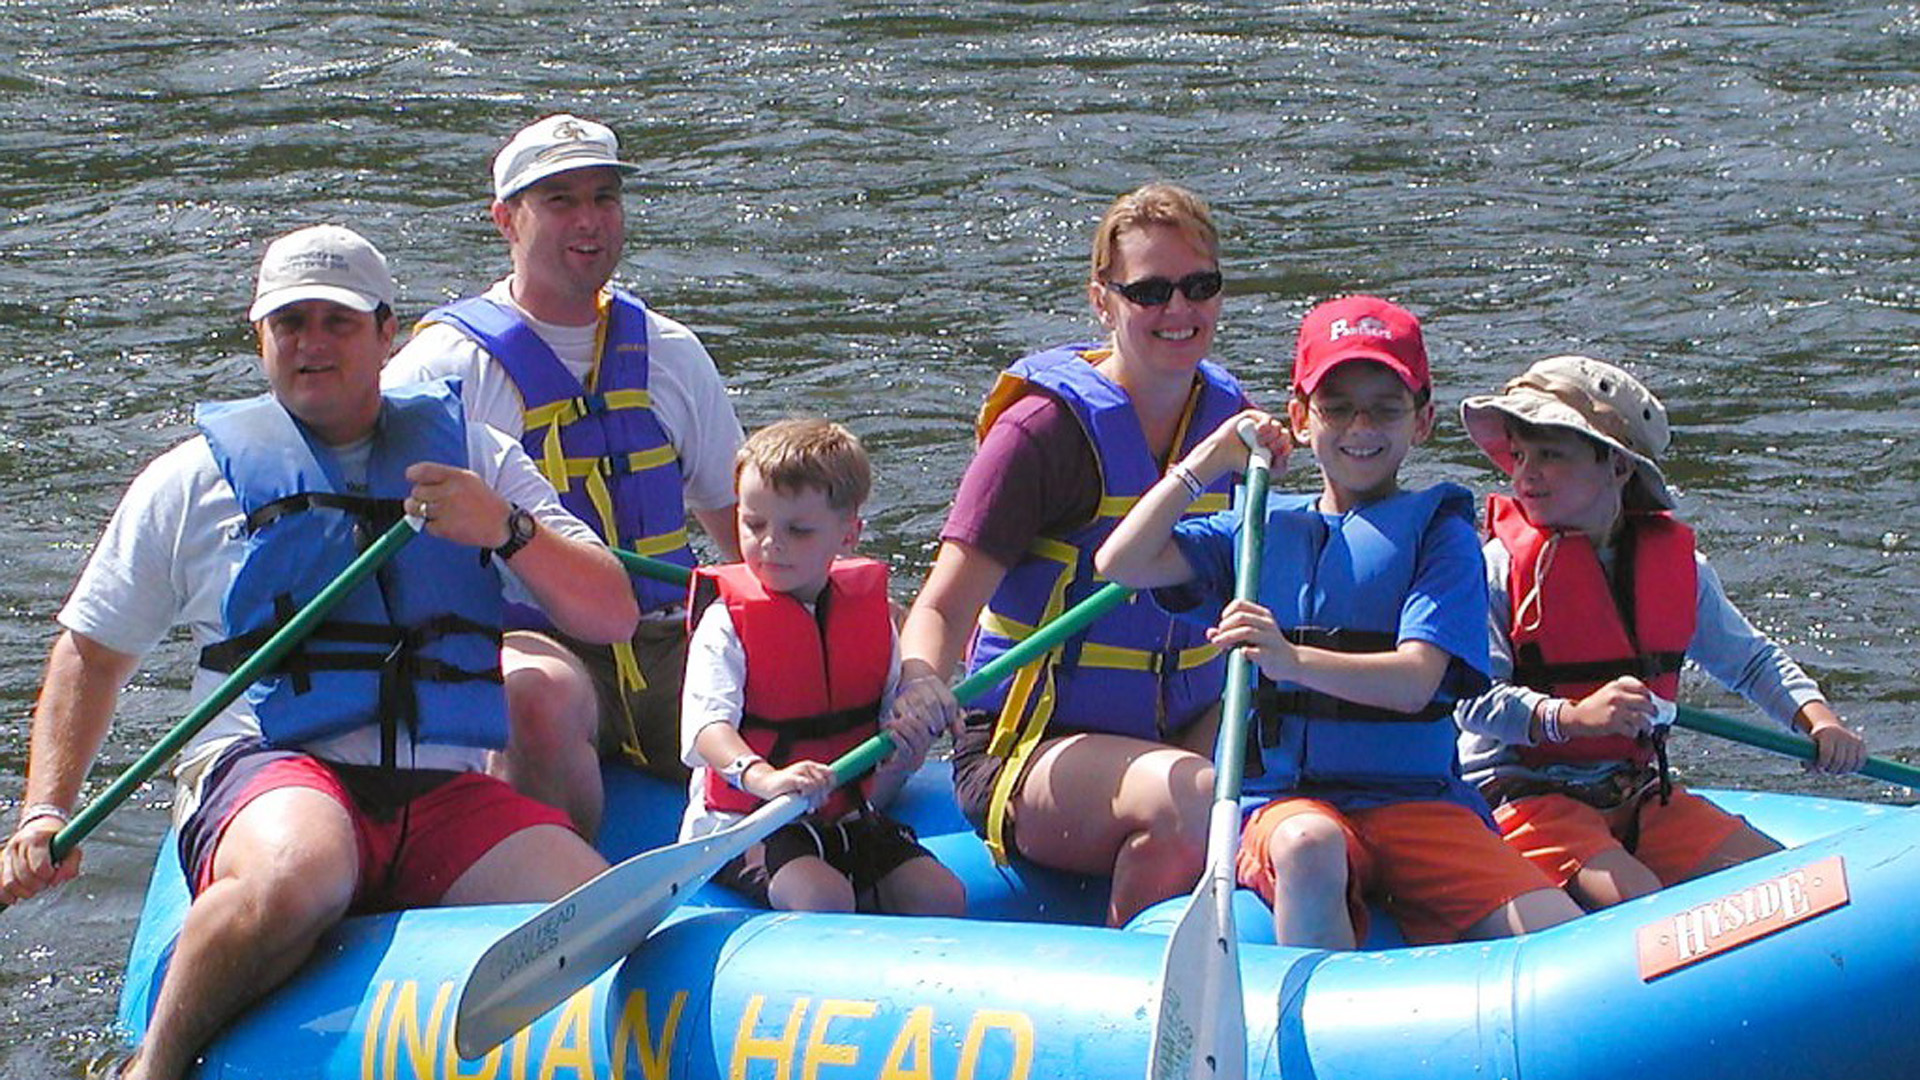 family of 6 navigating the Delaware River in a raft Indian Head Canoeing Rafting Kayaking Tubing Delaware River